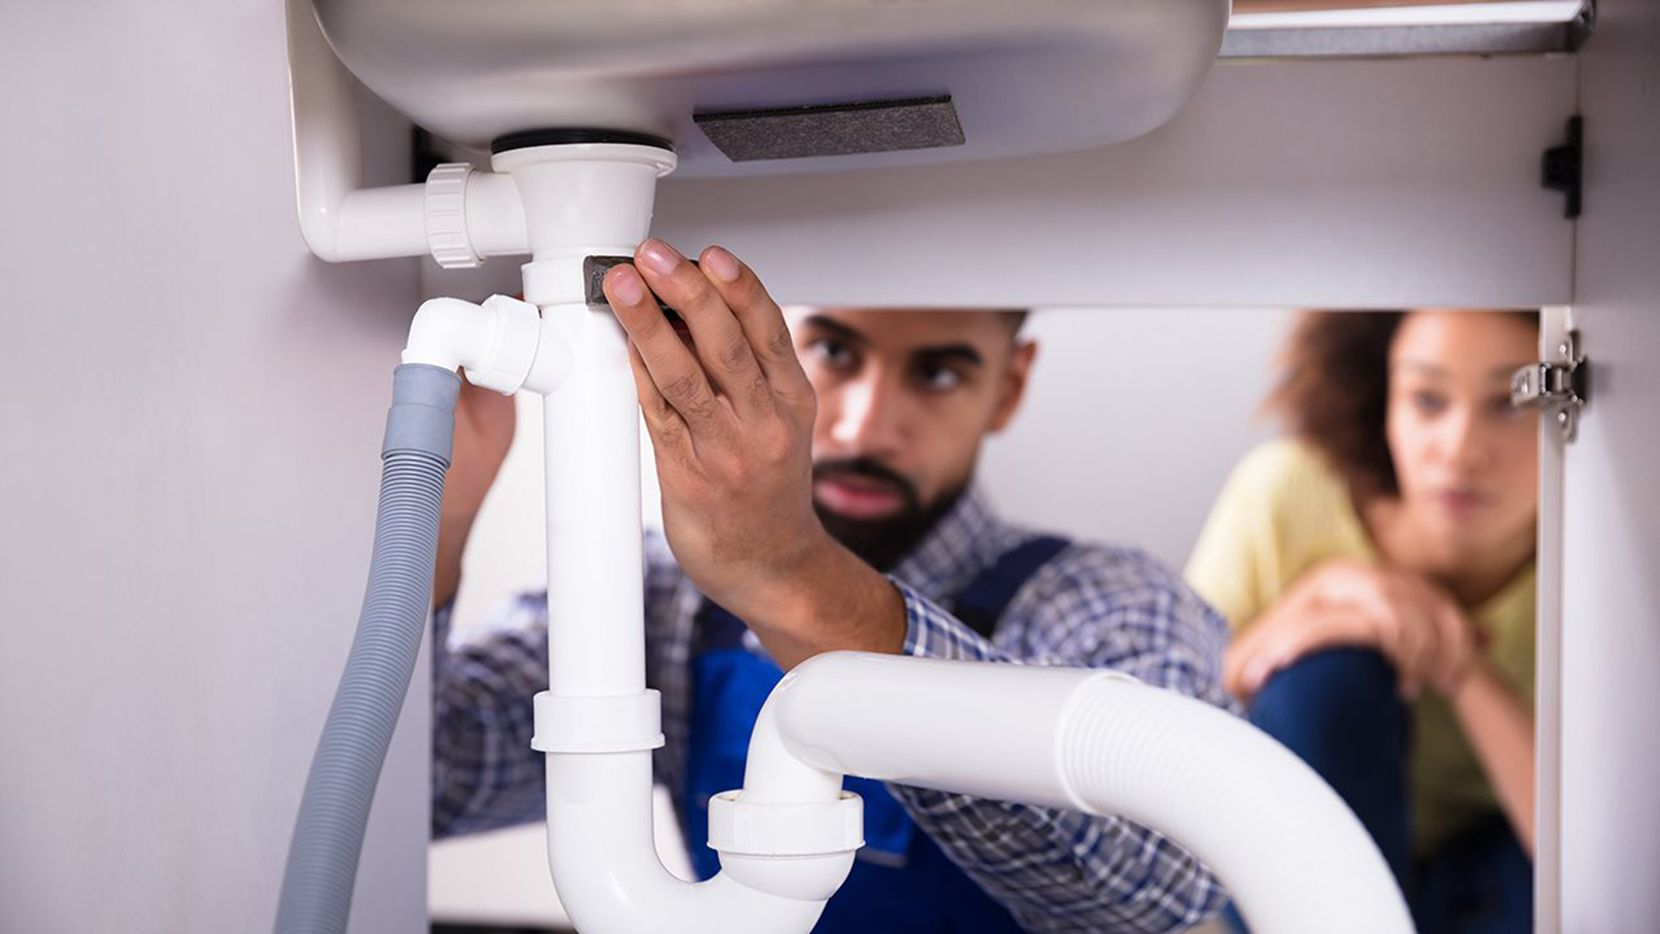 Inspect plumbing connections, appliance hoses and pipes for leaks.